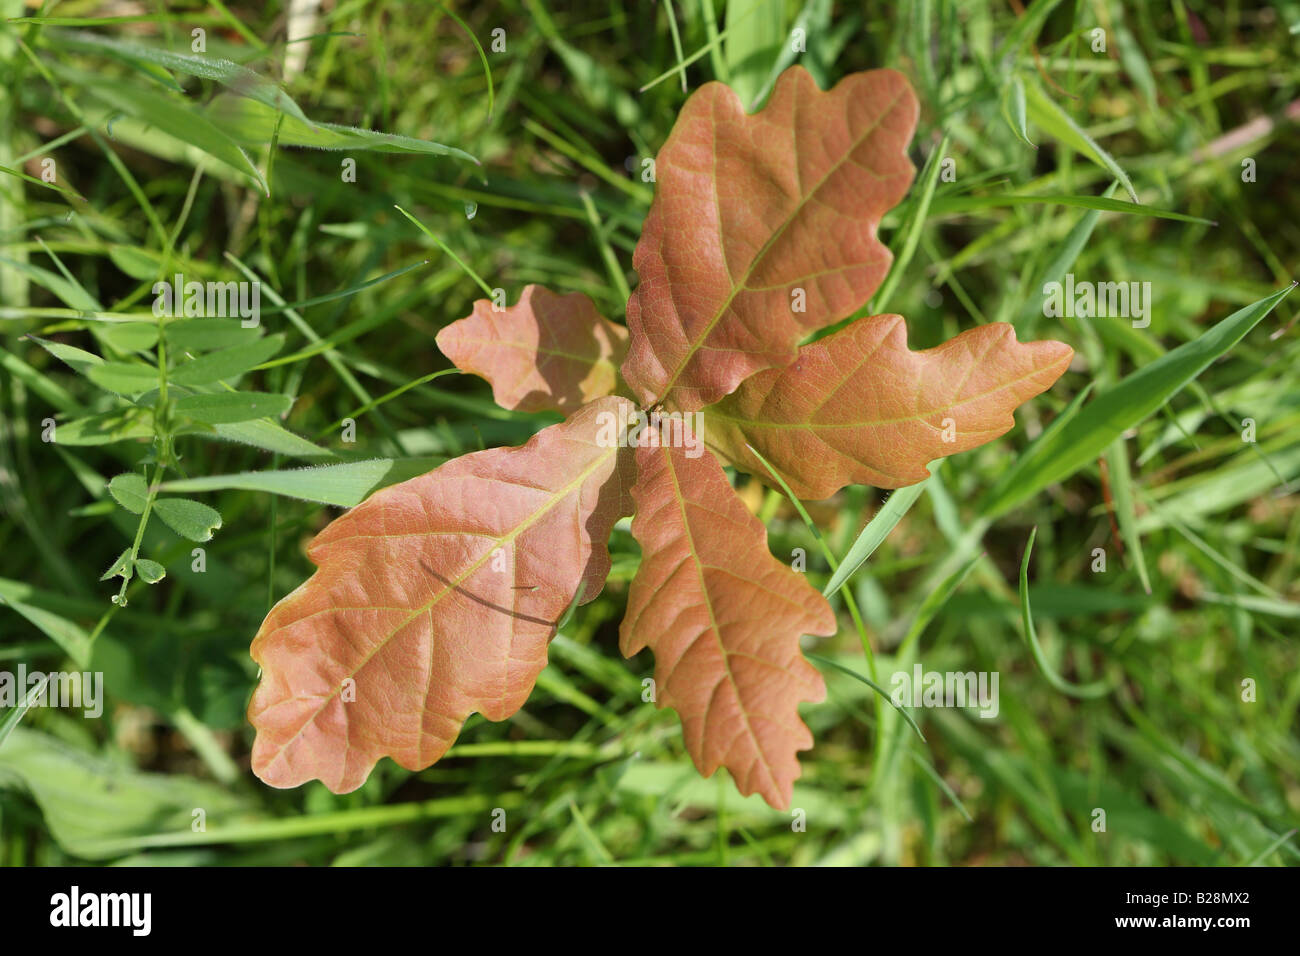 OAK Quercus robur SMALL SEEDLING PUSHES THROUGH GRASSLAND - Stock Image